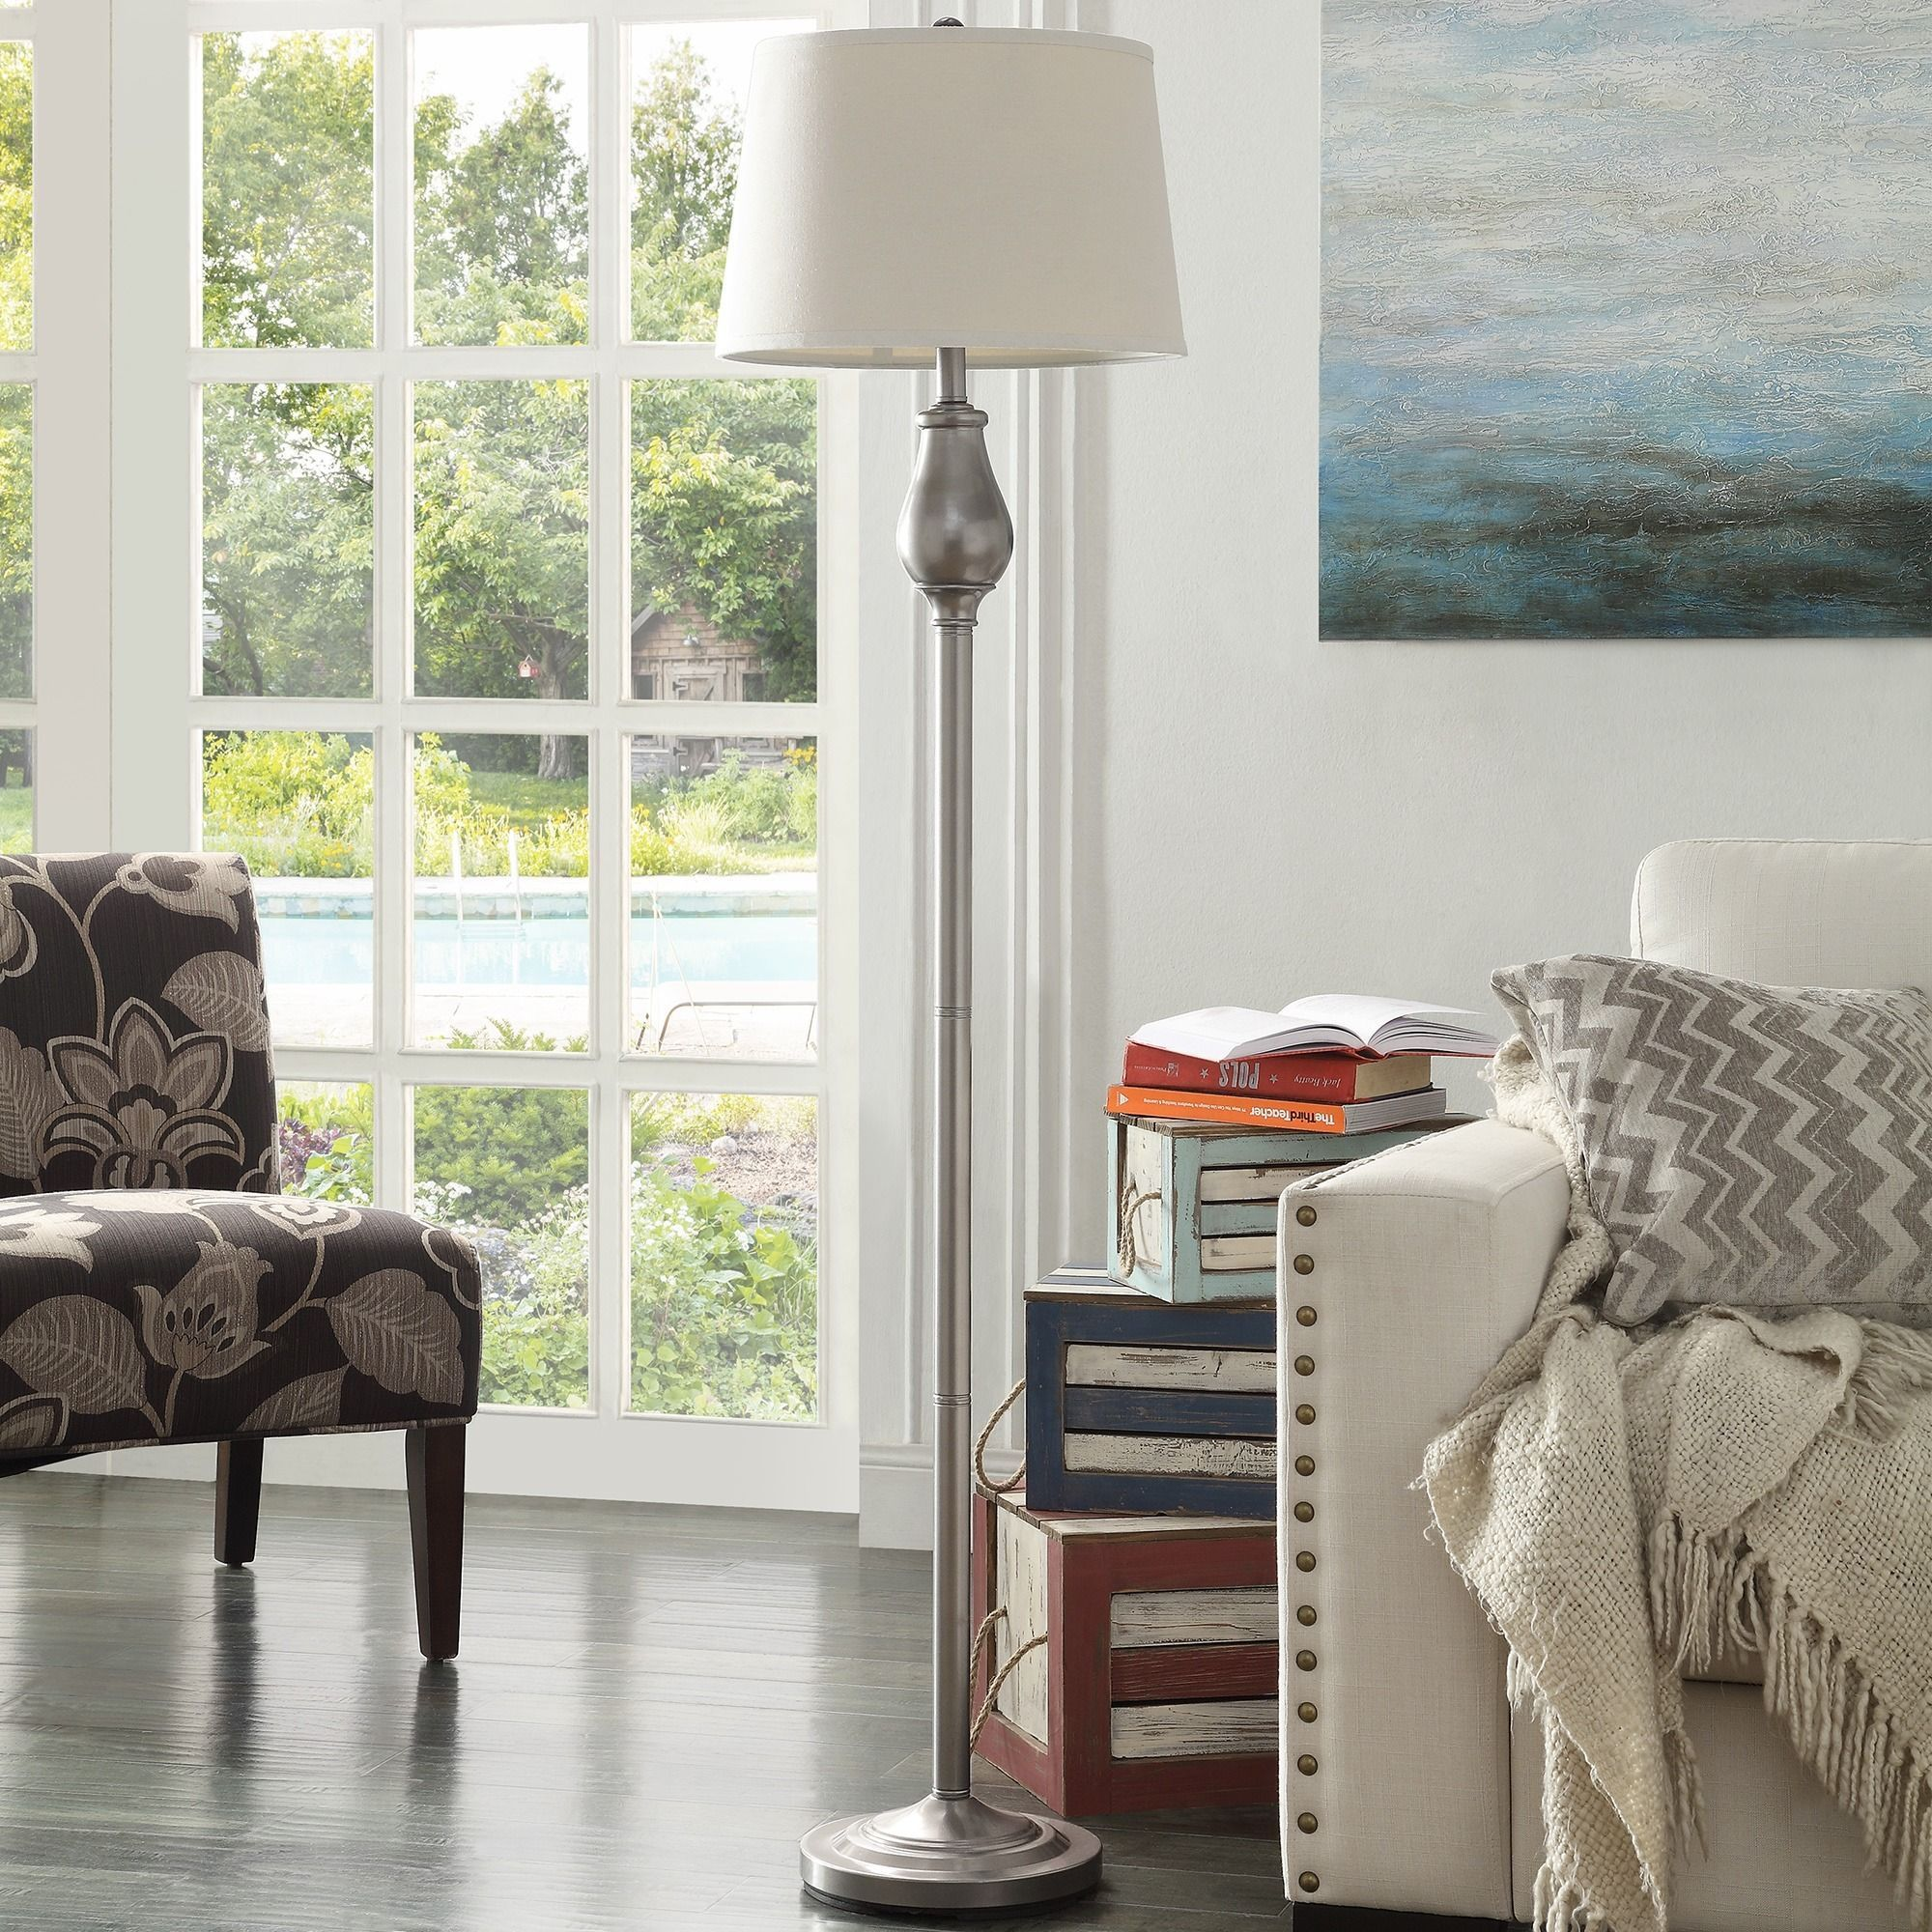 Schubert 3-way Bronze Contoured Base 1-light Accent Floor Lamp by iNSPIRE Q  Bold by iNSPIRE Q